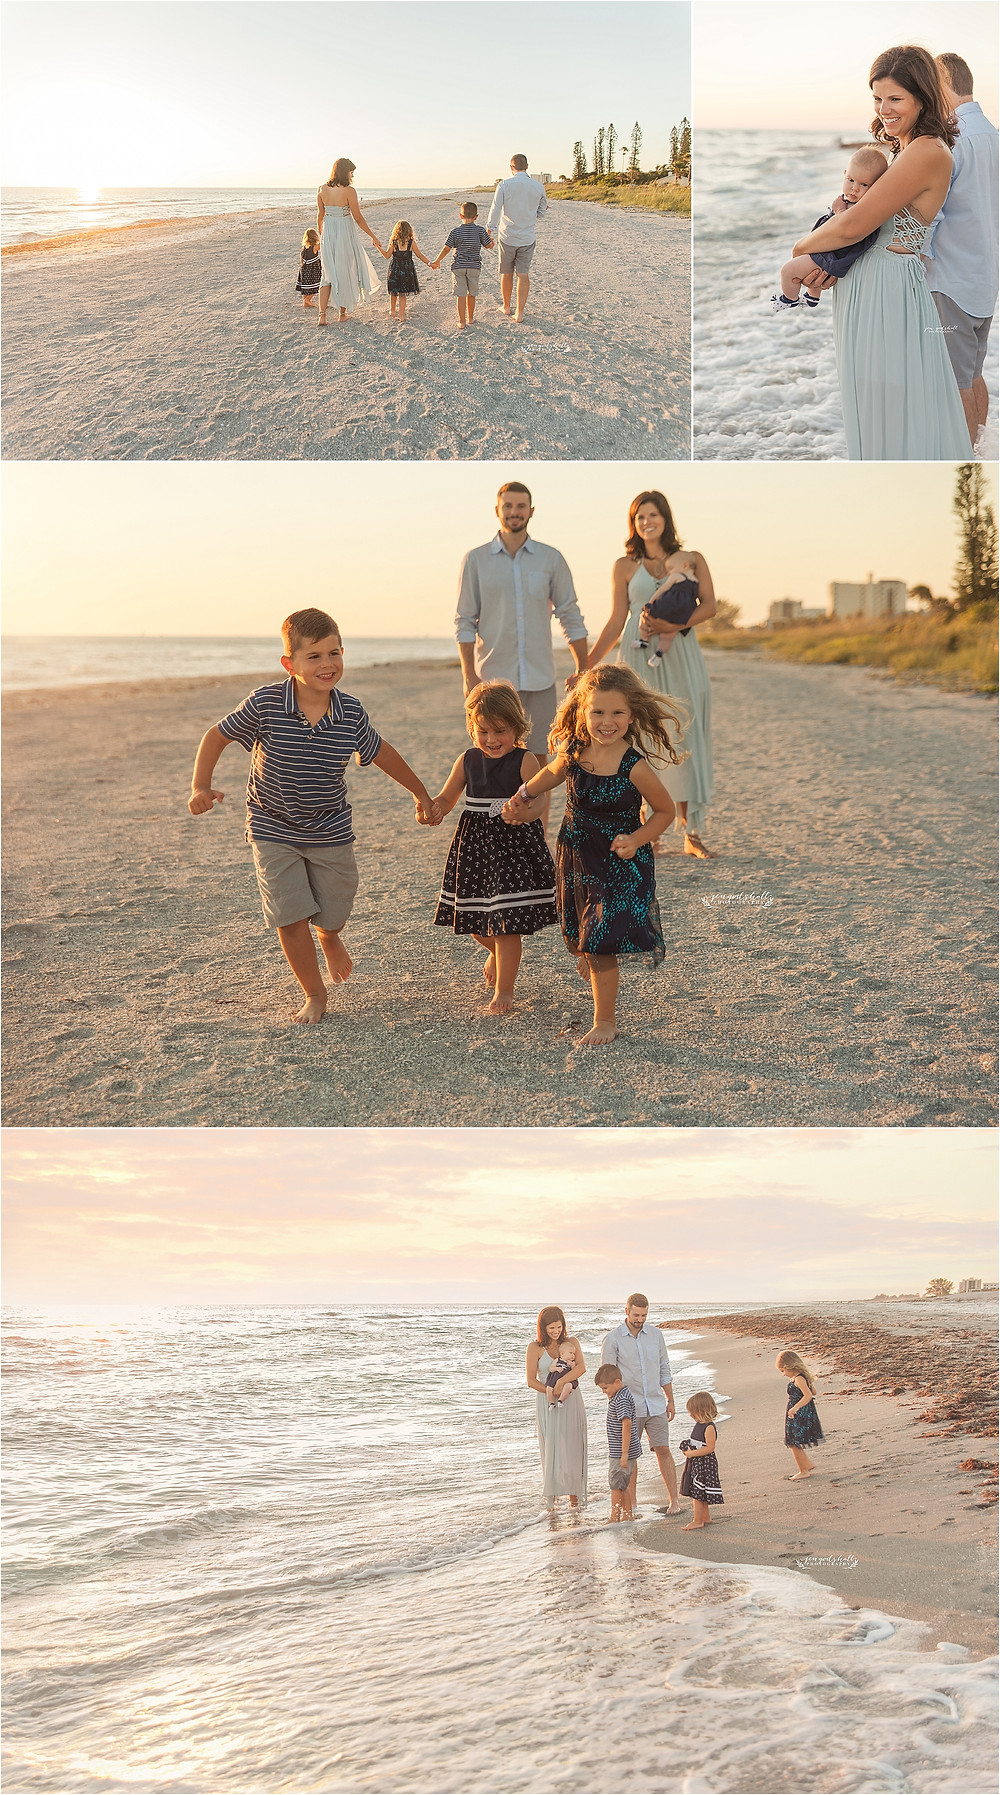 Seminaro Family Portraits - Venice Family Photographer - Sarasota - Beach - Jen Godshall Photography